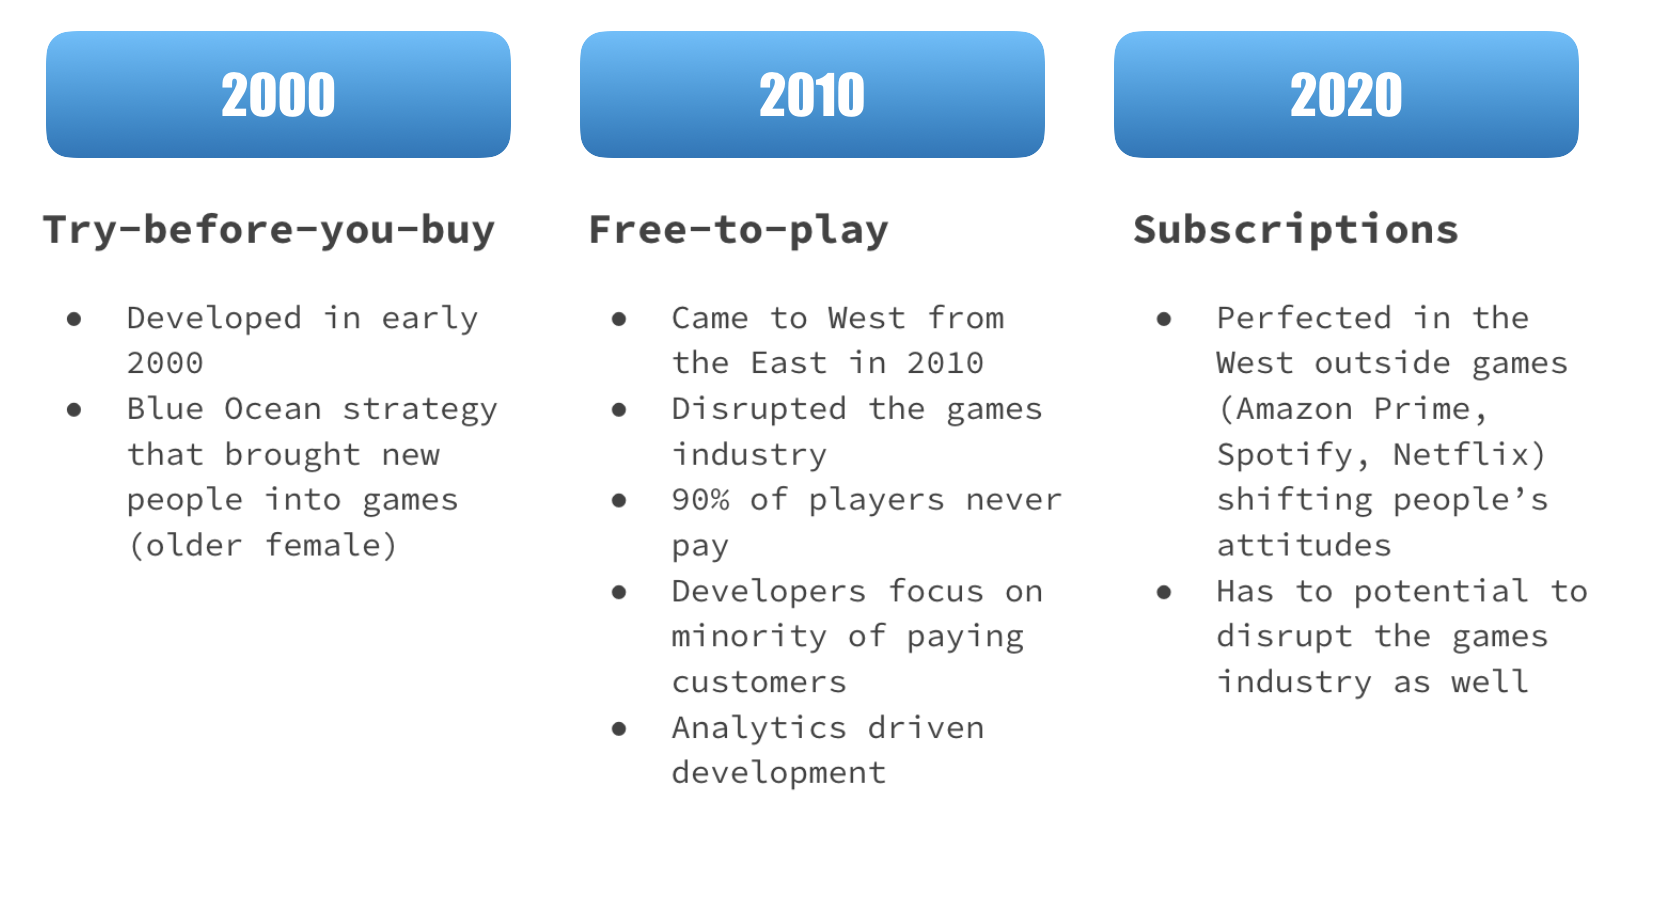 During the last two decades we've seen two major disruption in the games' business model. First came the try-before-you-buy then a decade later free-to-play. All the signs point that the subscription model is the next disrupting business model.